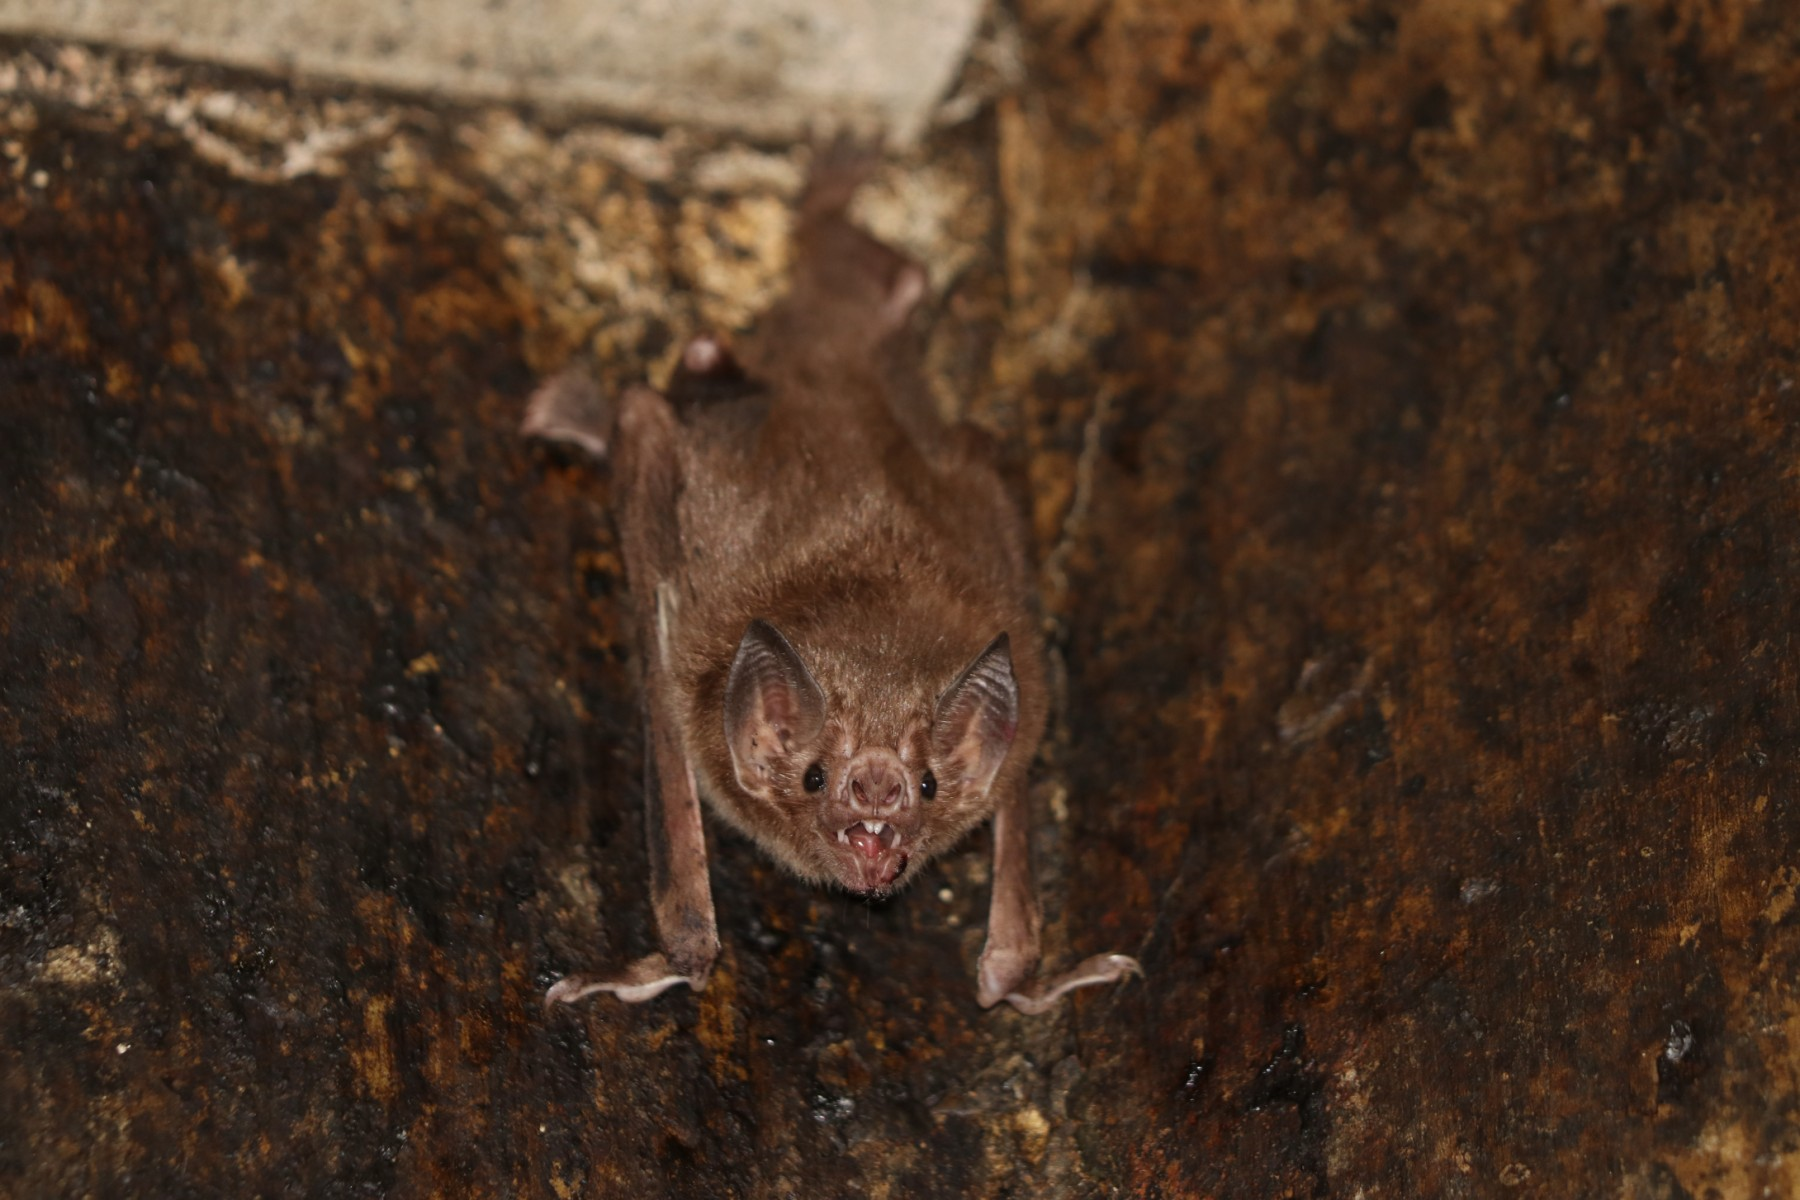 The common vampire bat